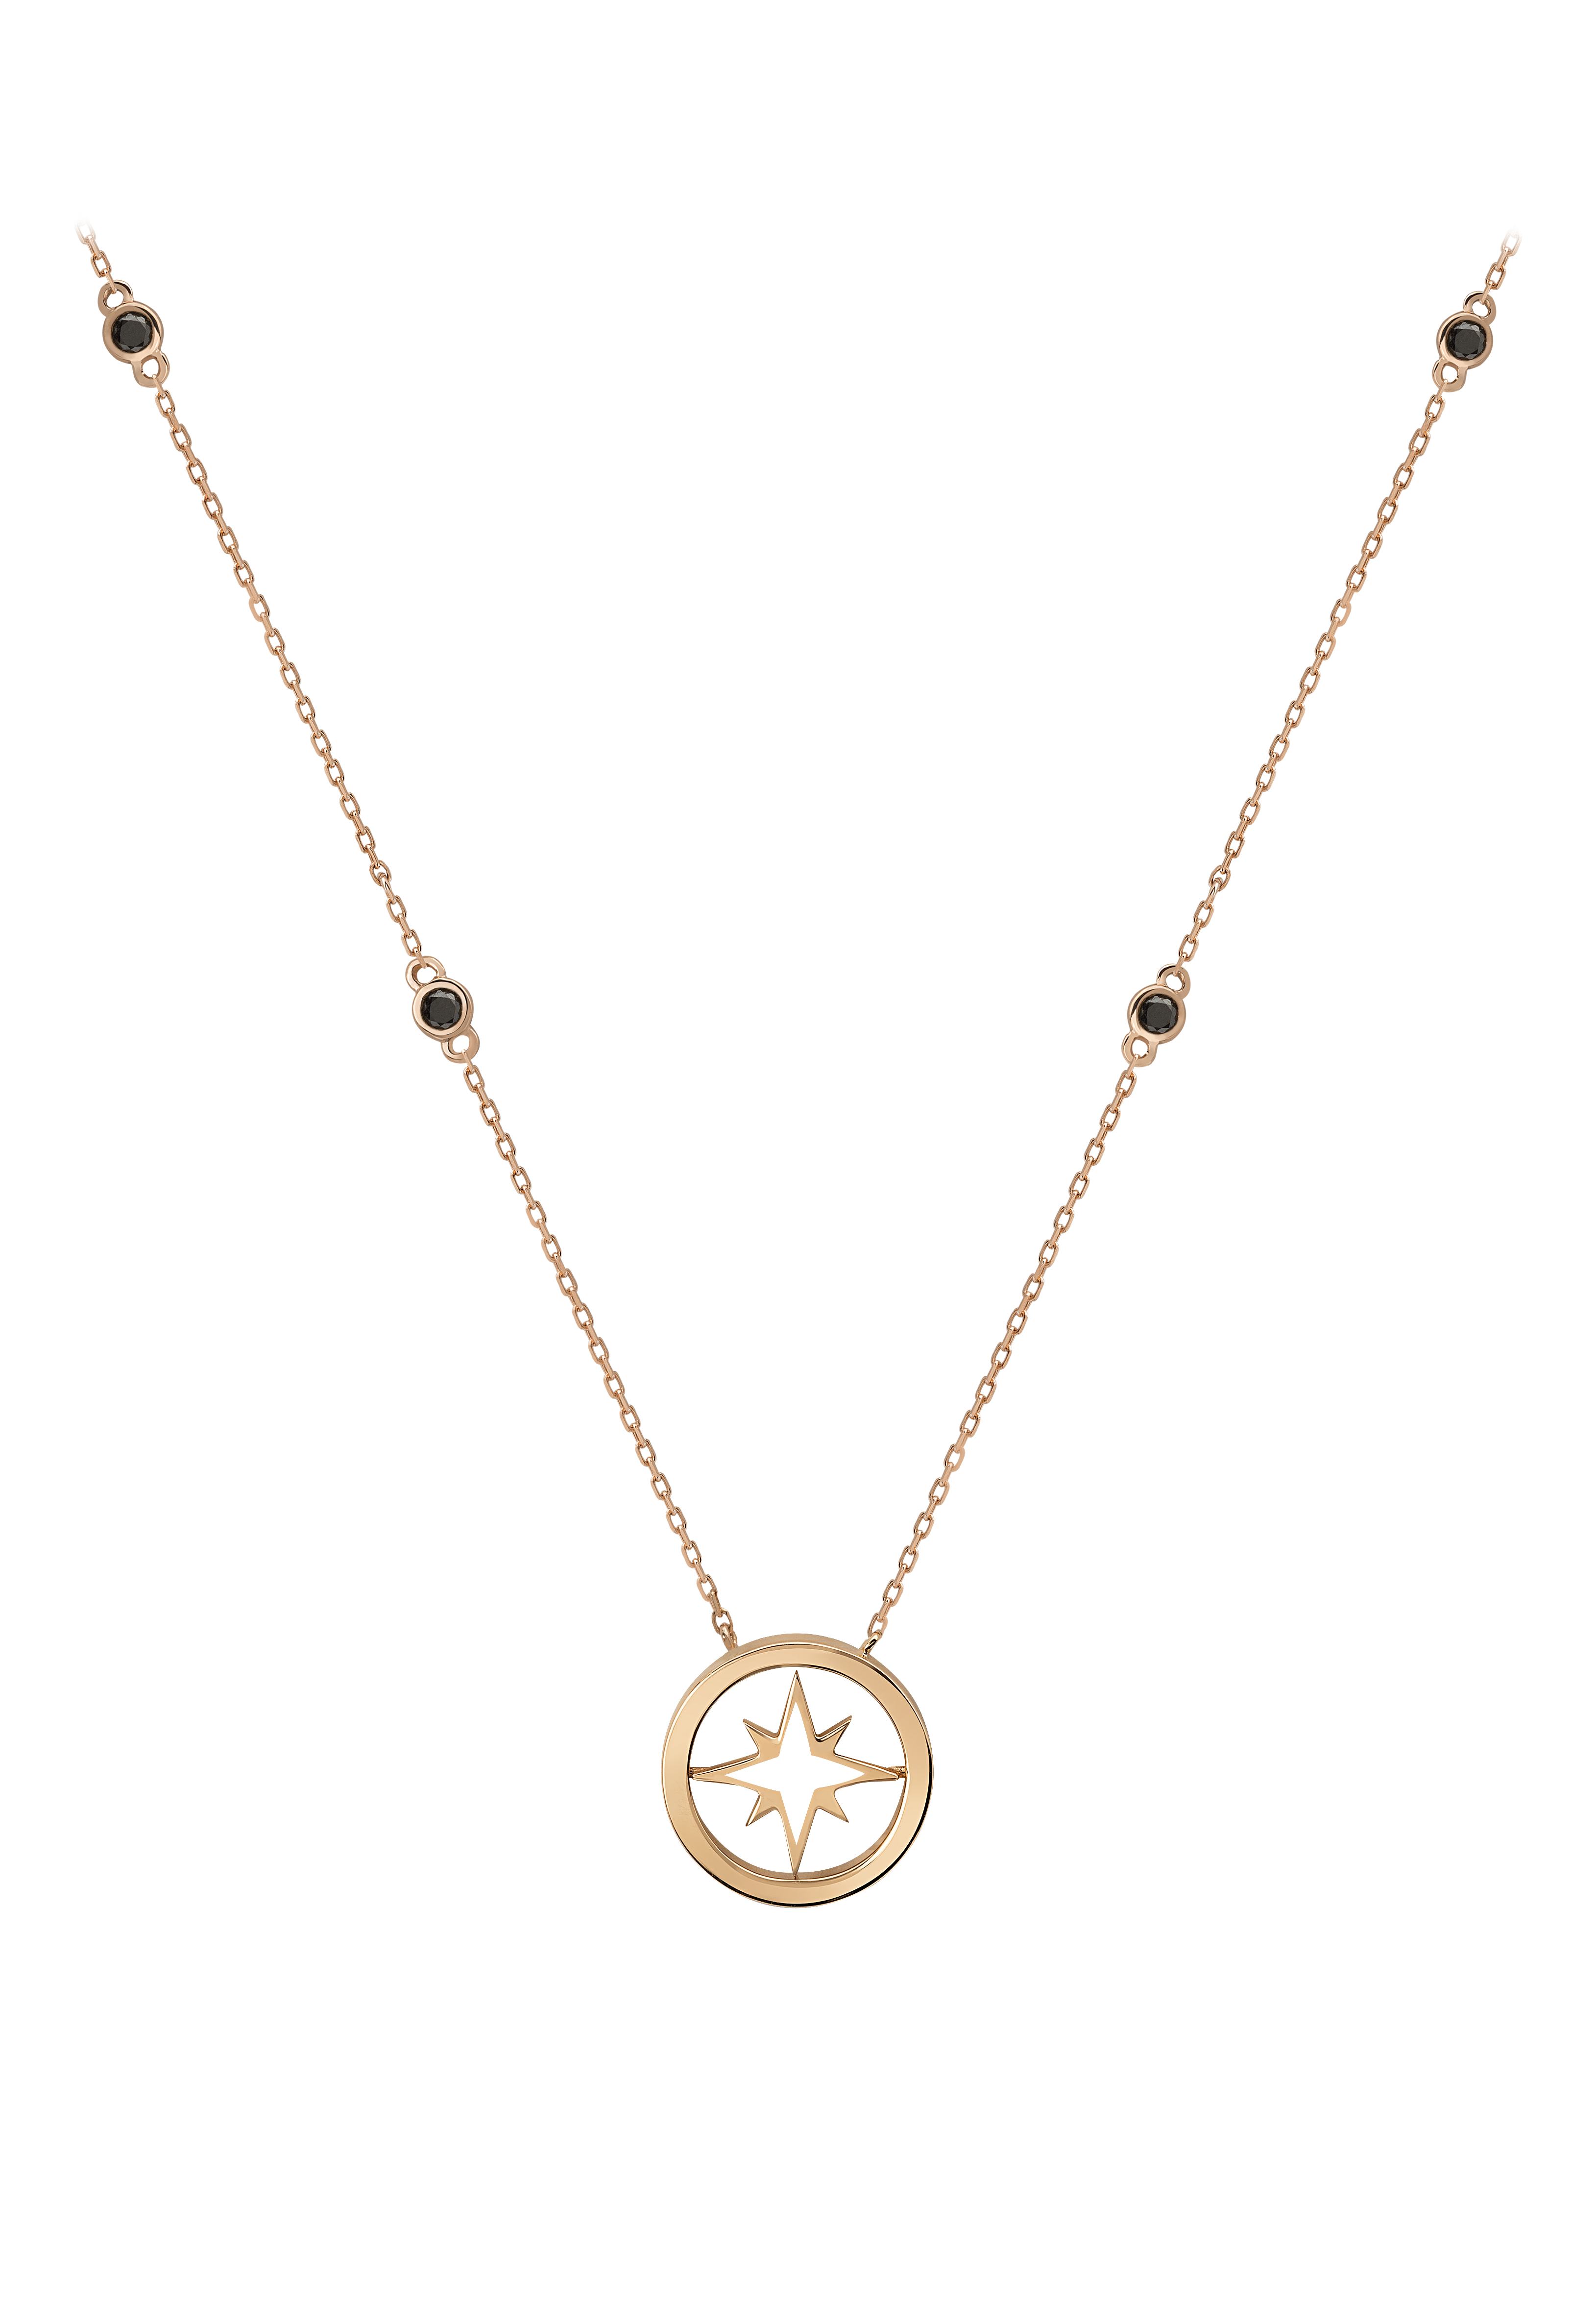 Nova Necklace - Black Diamonds, 18K Rose Gold by Aveen on curated-crowd.com